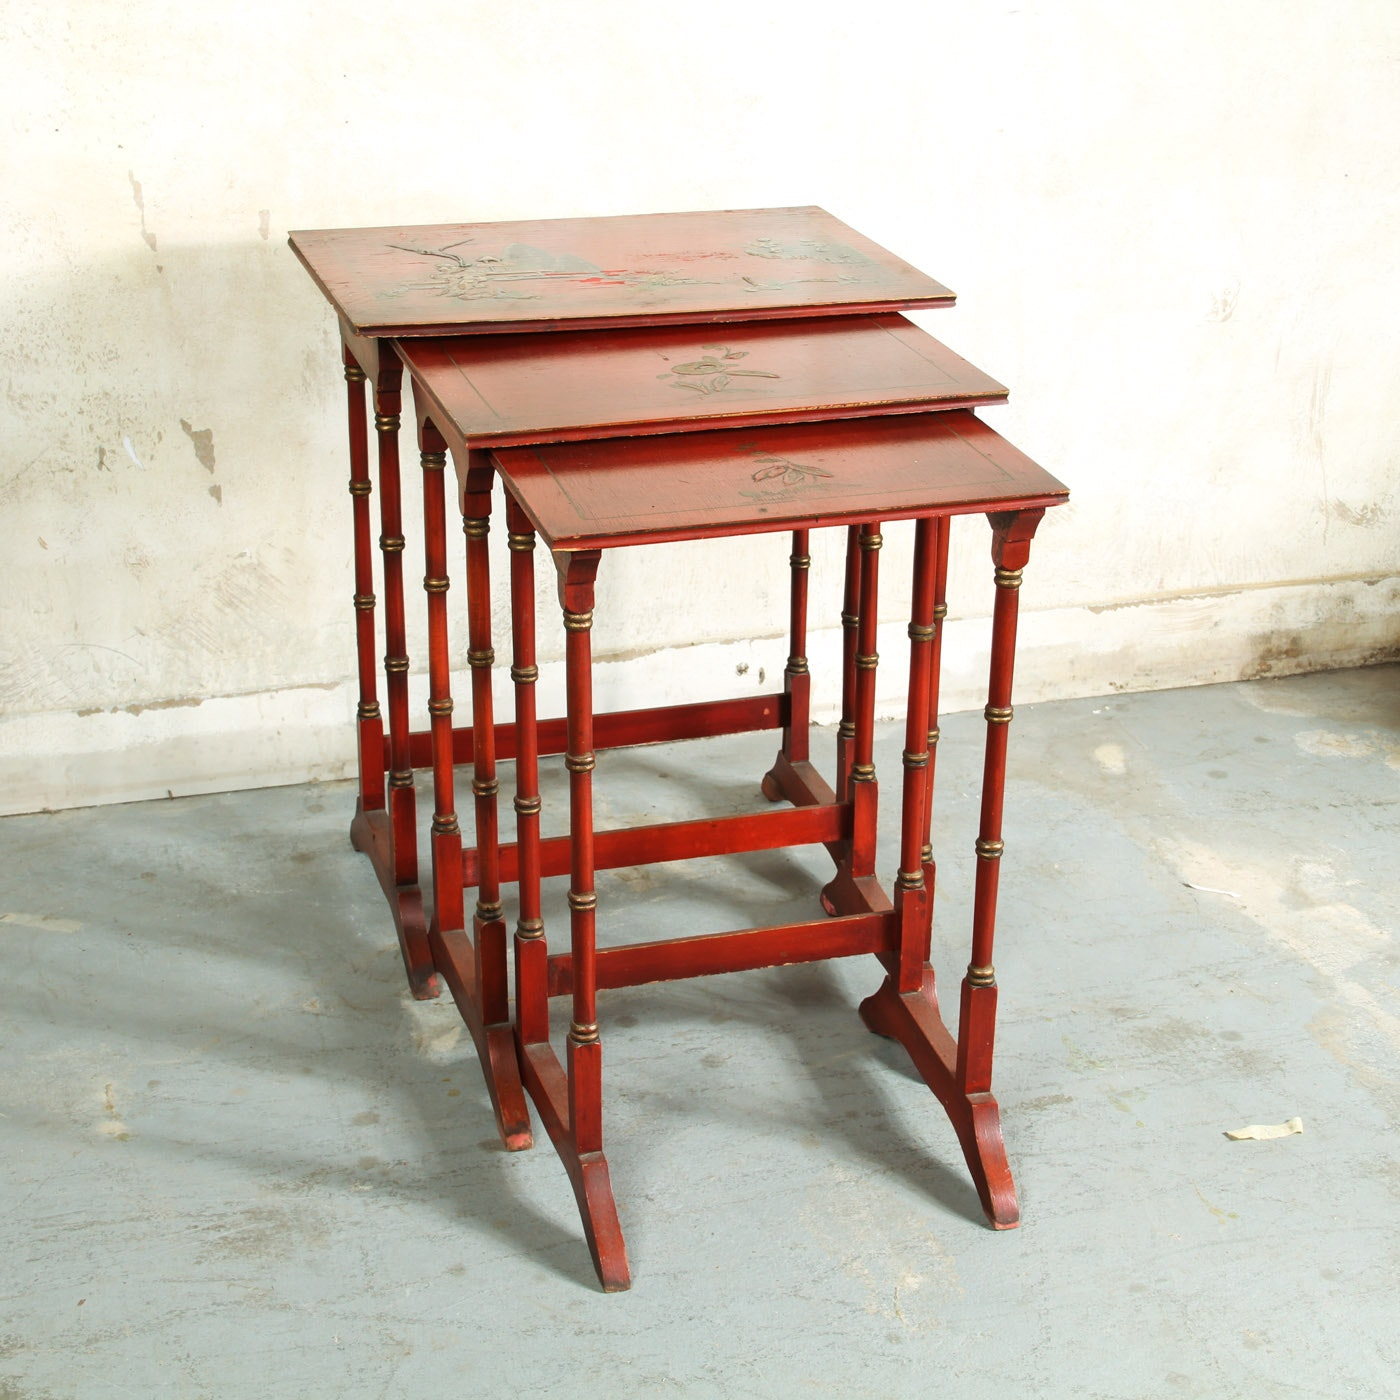 Antique Chinesoire Wooden Nesting Tables